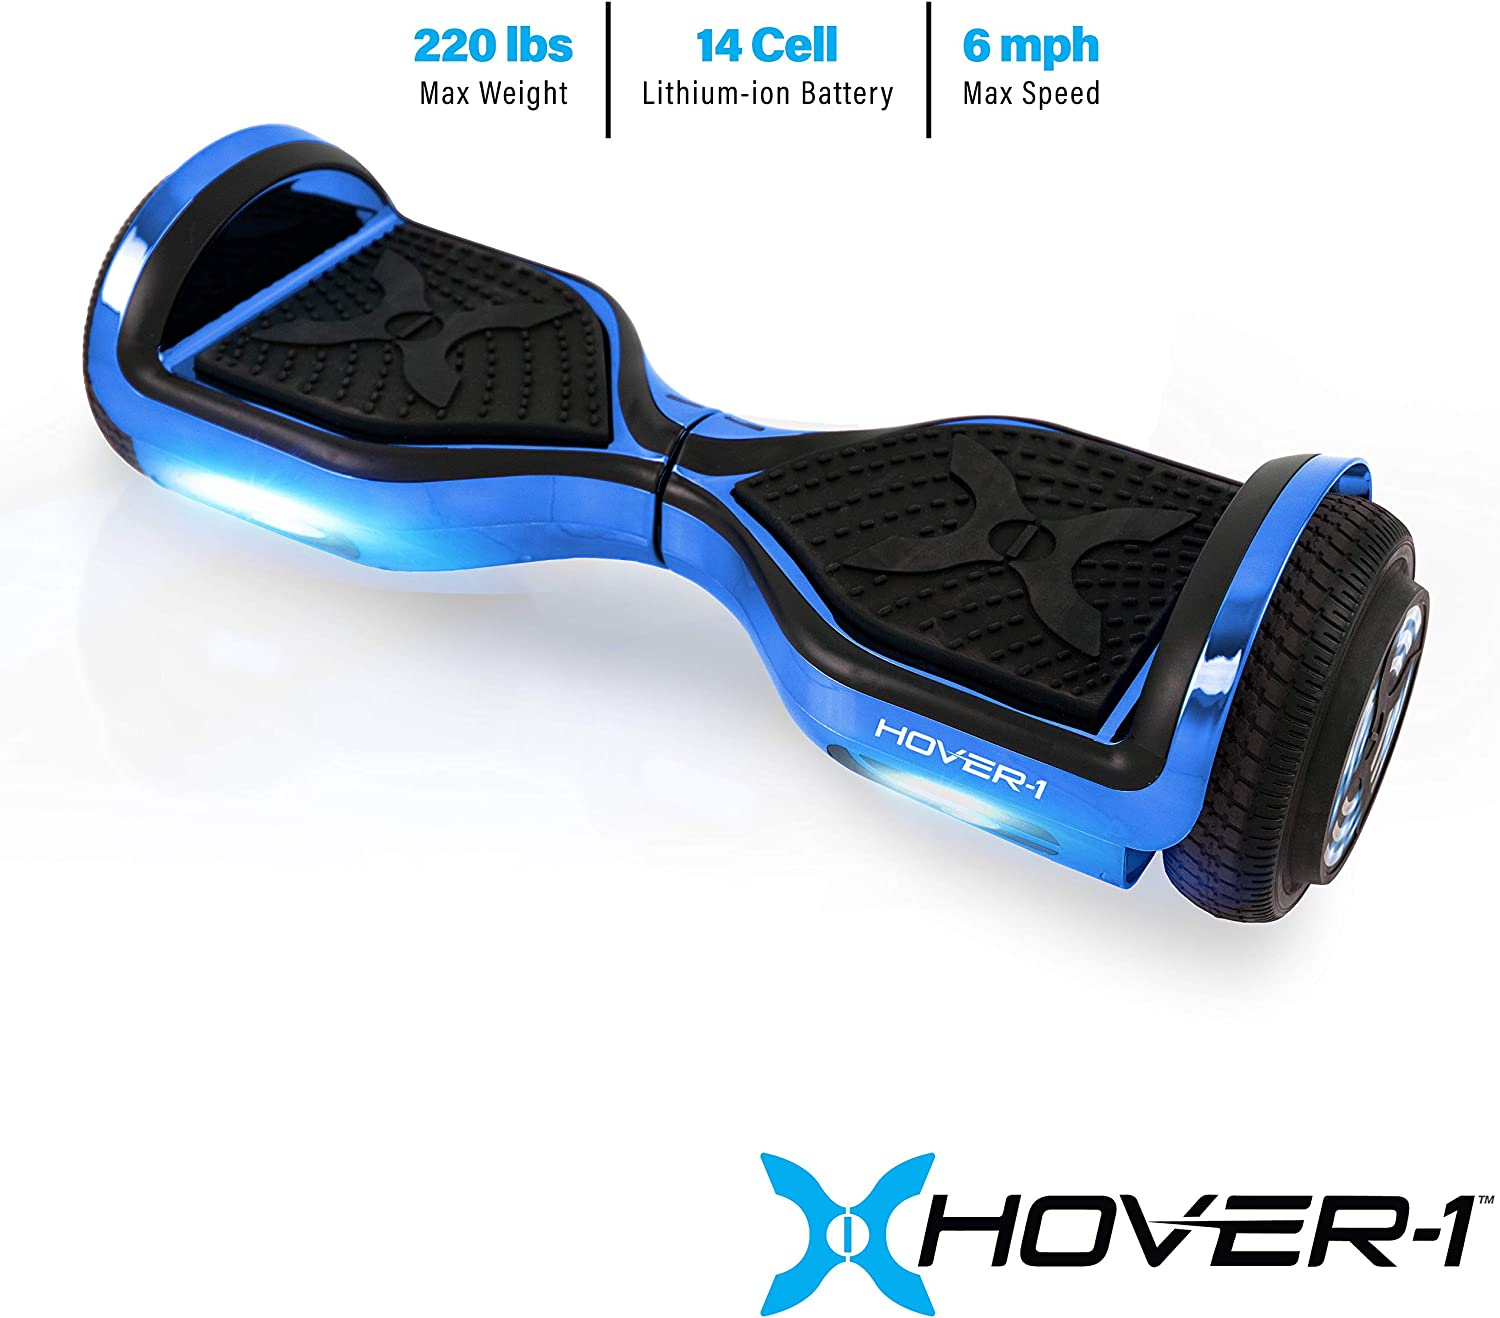 Hover-1 Chrome Electric Hoverboard Scooter blue / US